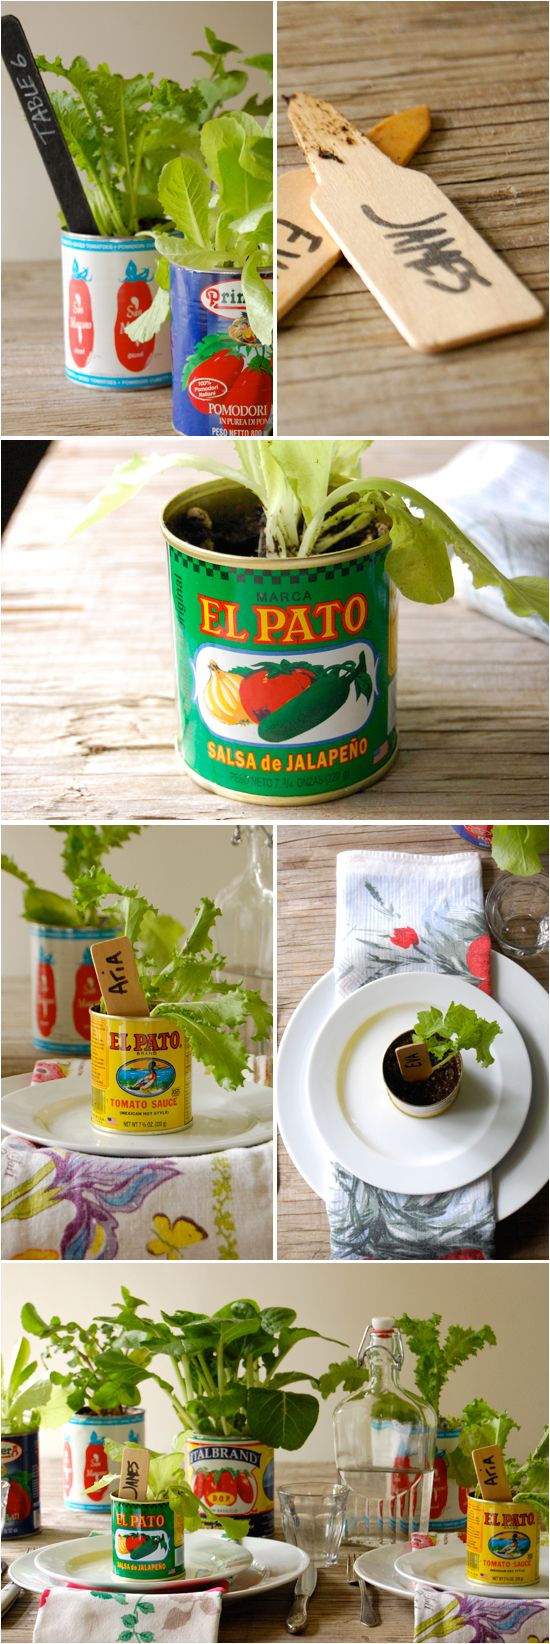 Favor - Lettuce in a tin. I could create a design around the tin. Hmmmm